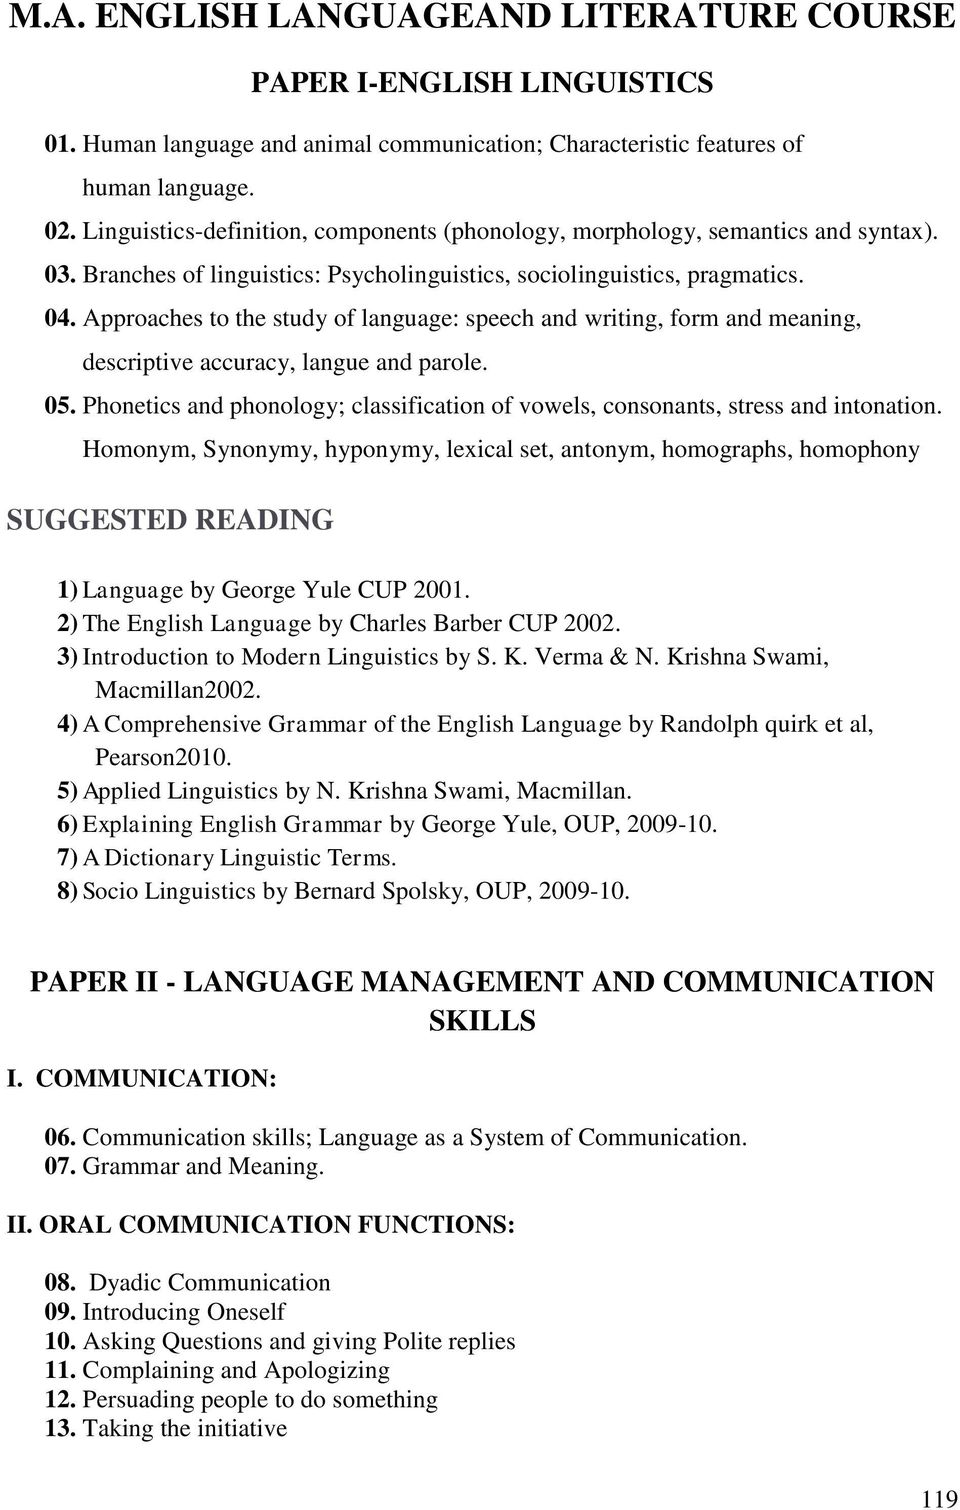 essay on english and communication technology